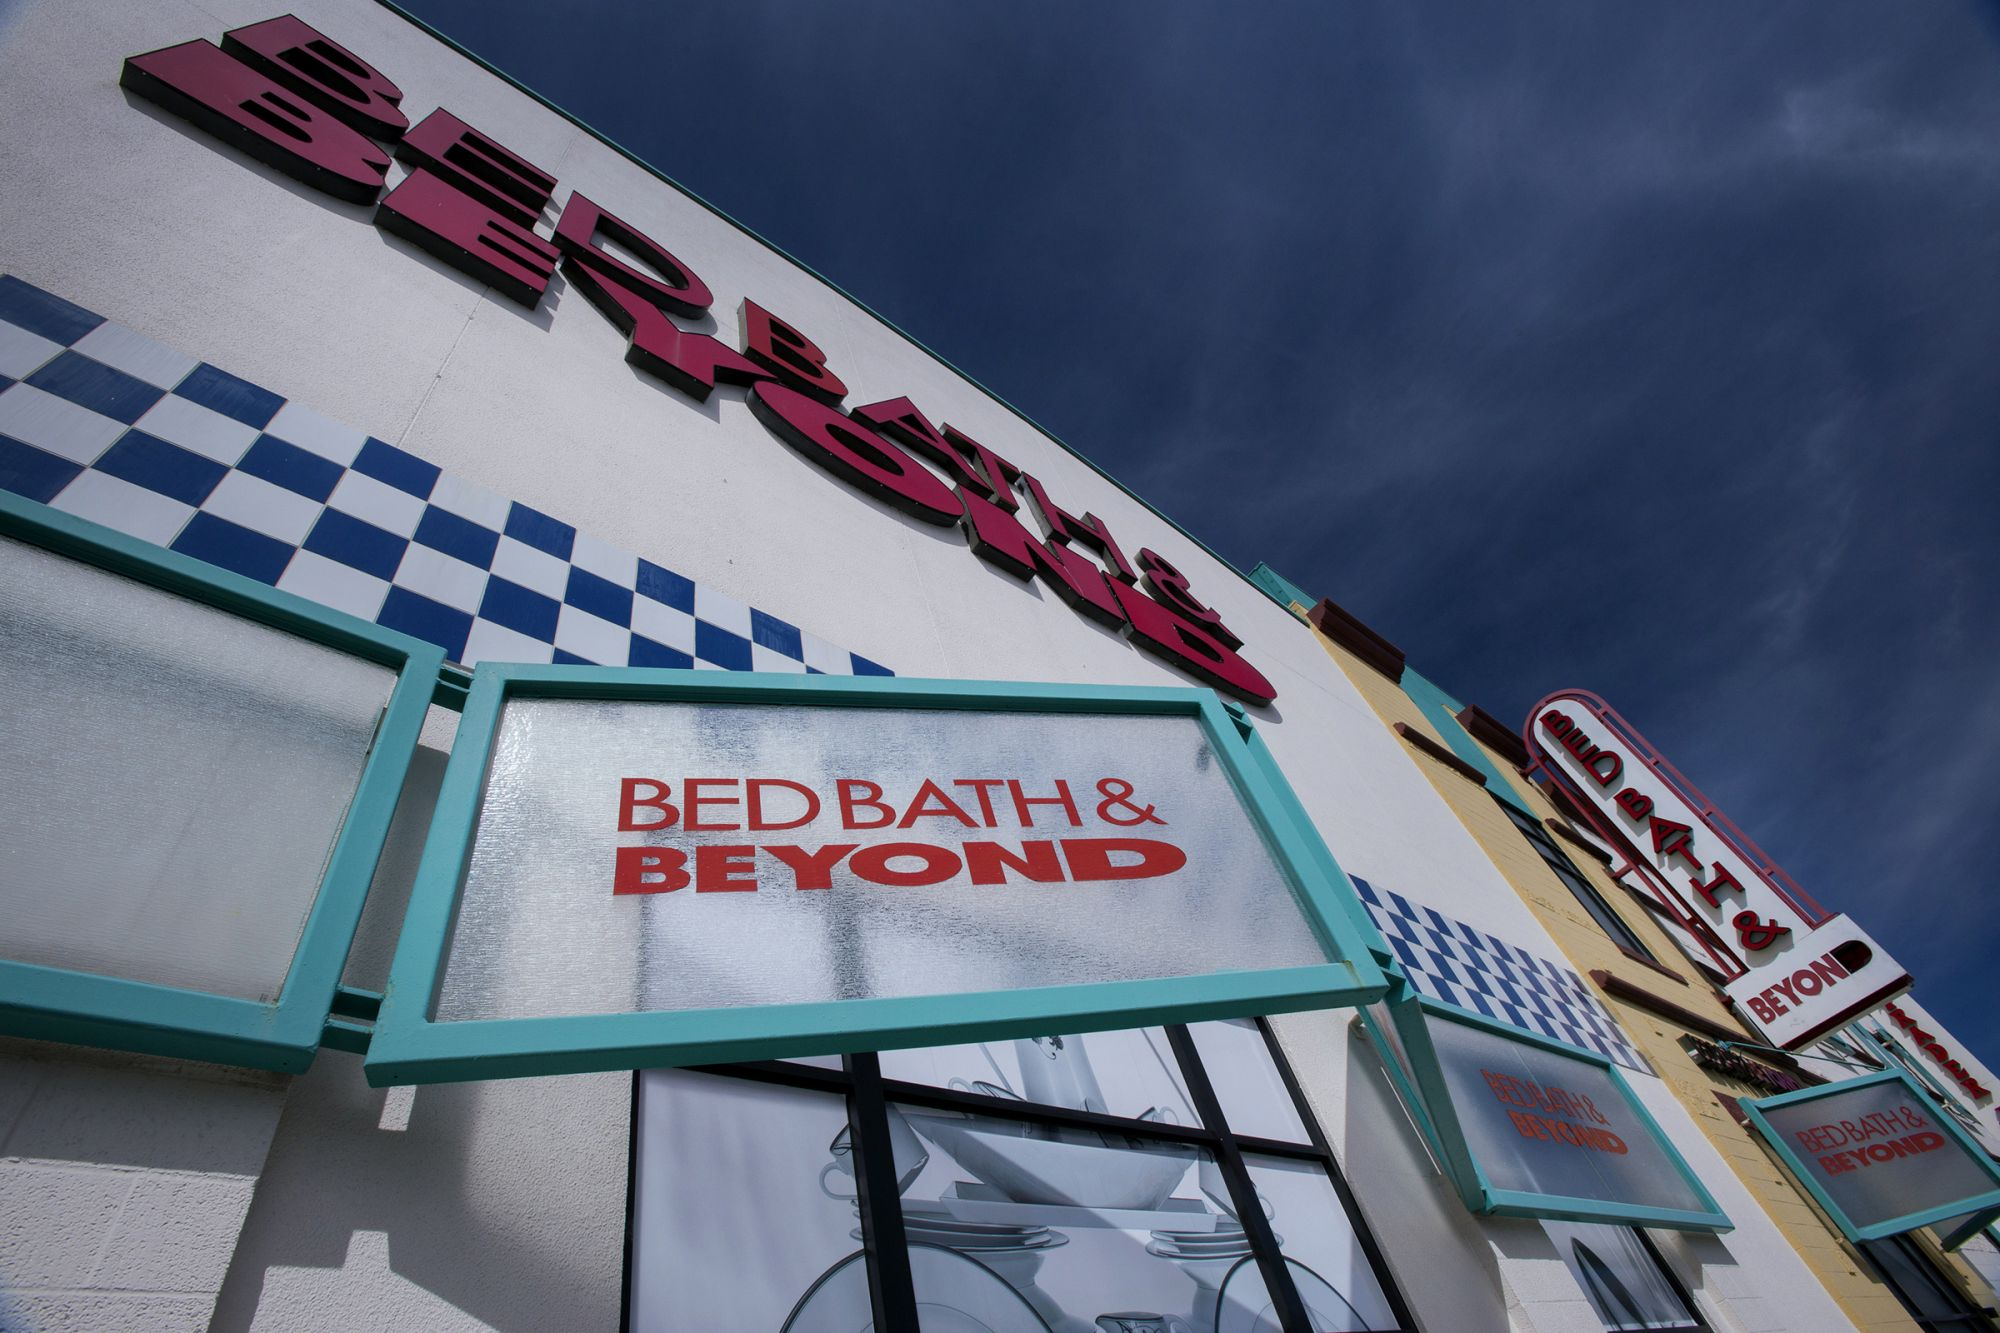 Bed Bath & Beyond Once Again Drives Entrepreneur Index™ Higher